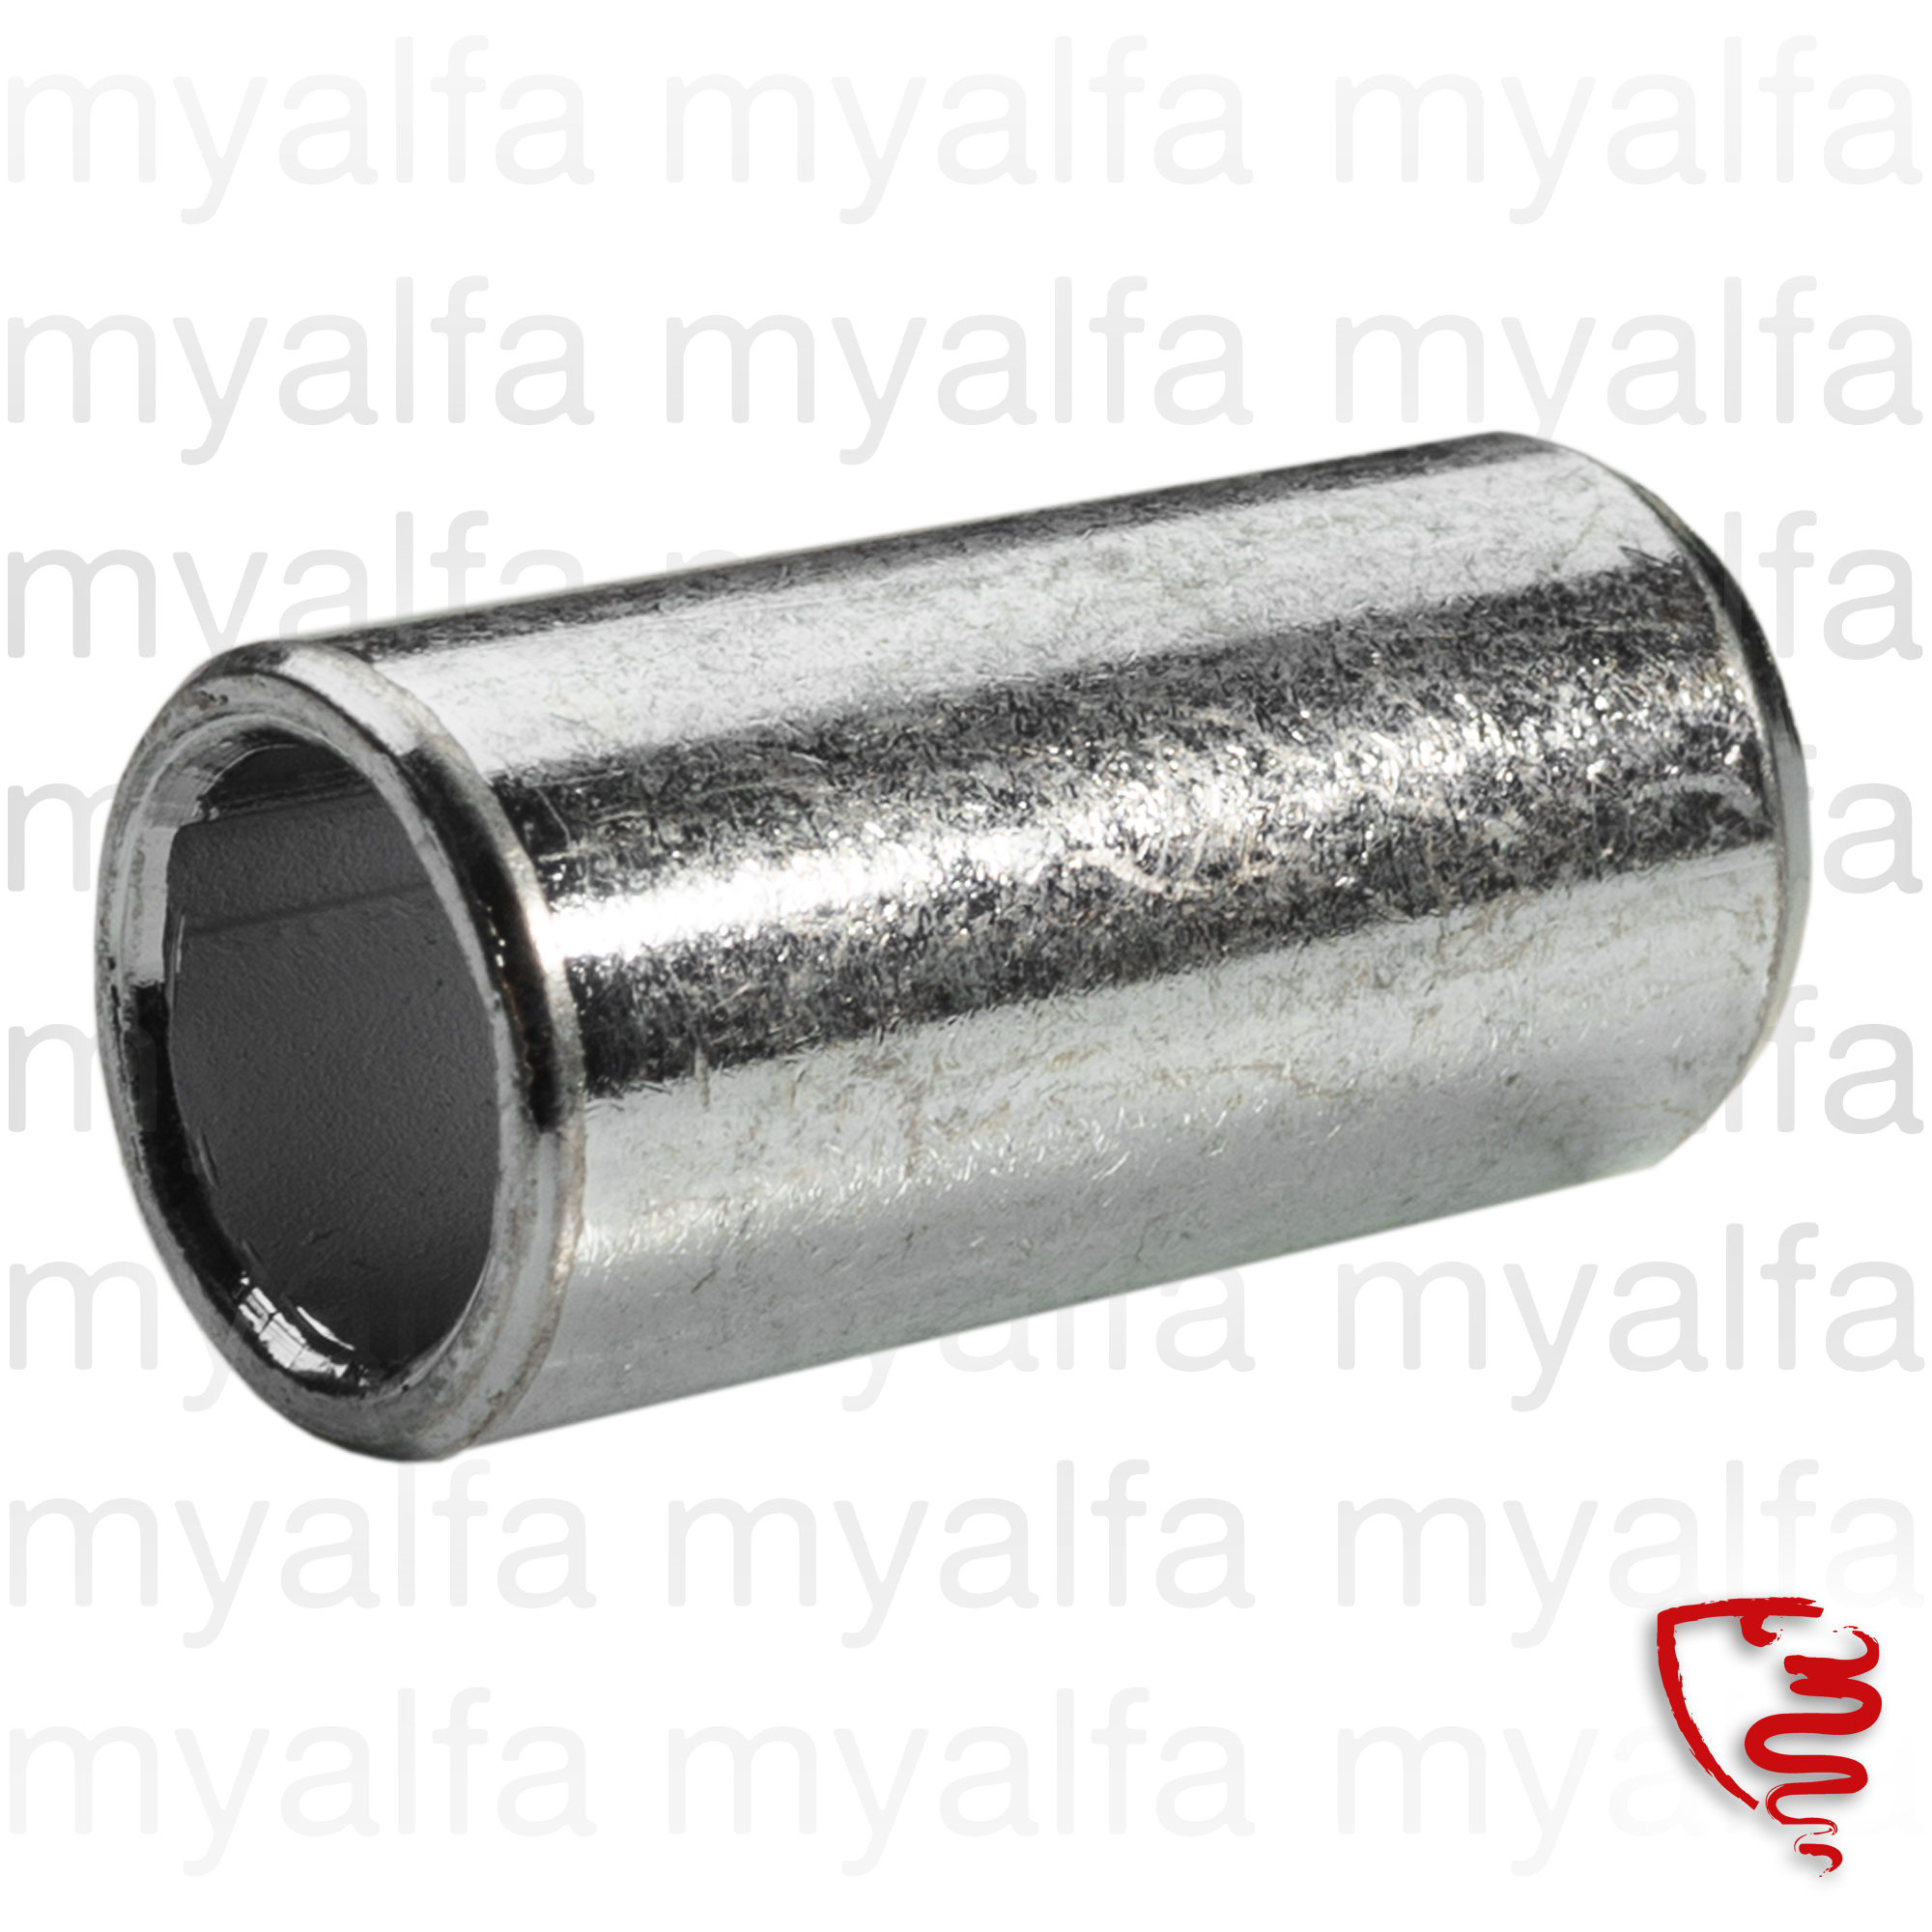 Fitting for exhaust support rubber for 105/115, Exhaust System, Attachment Parts